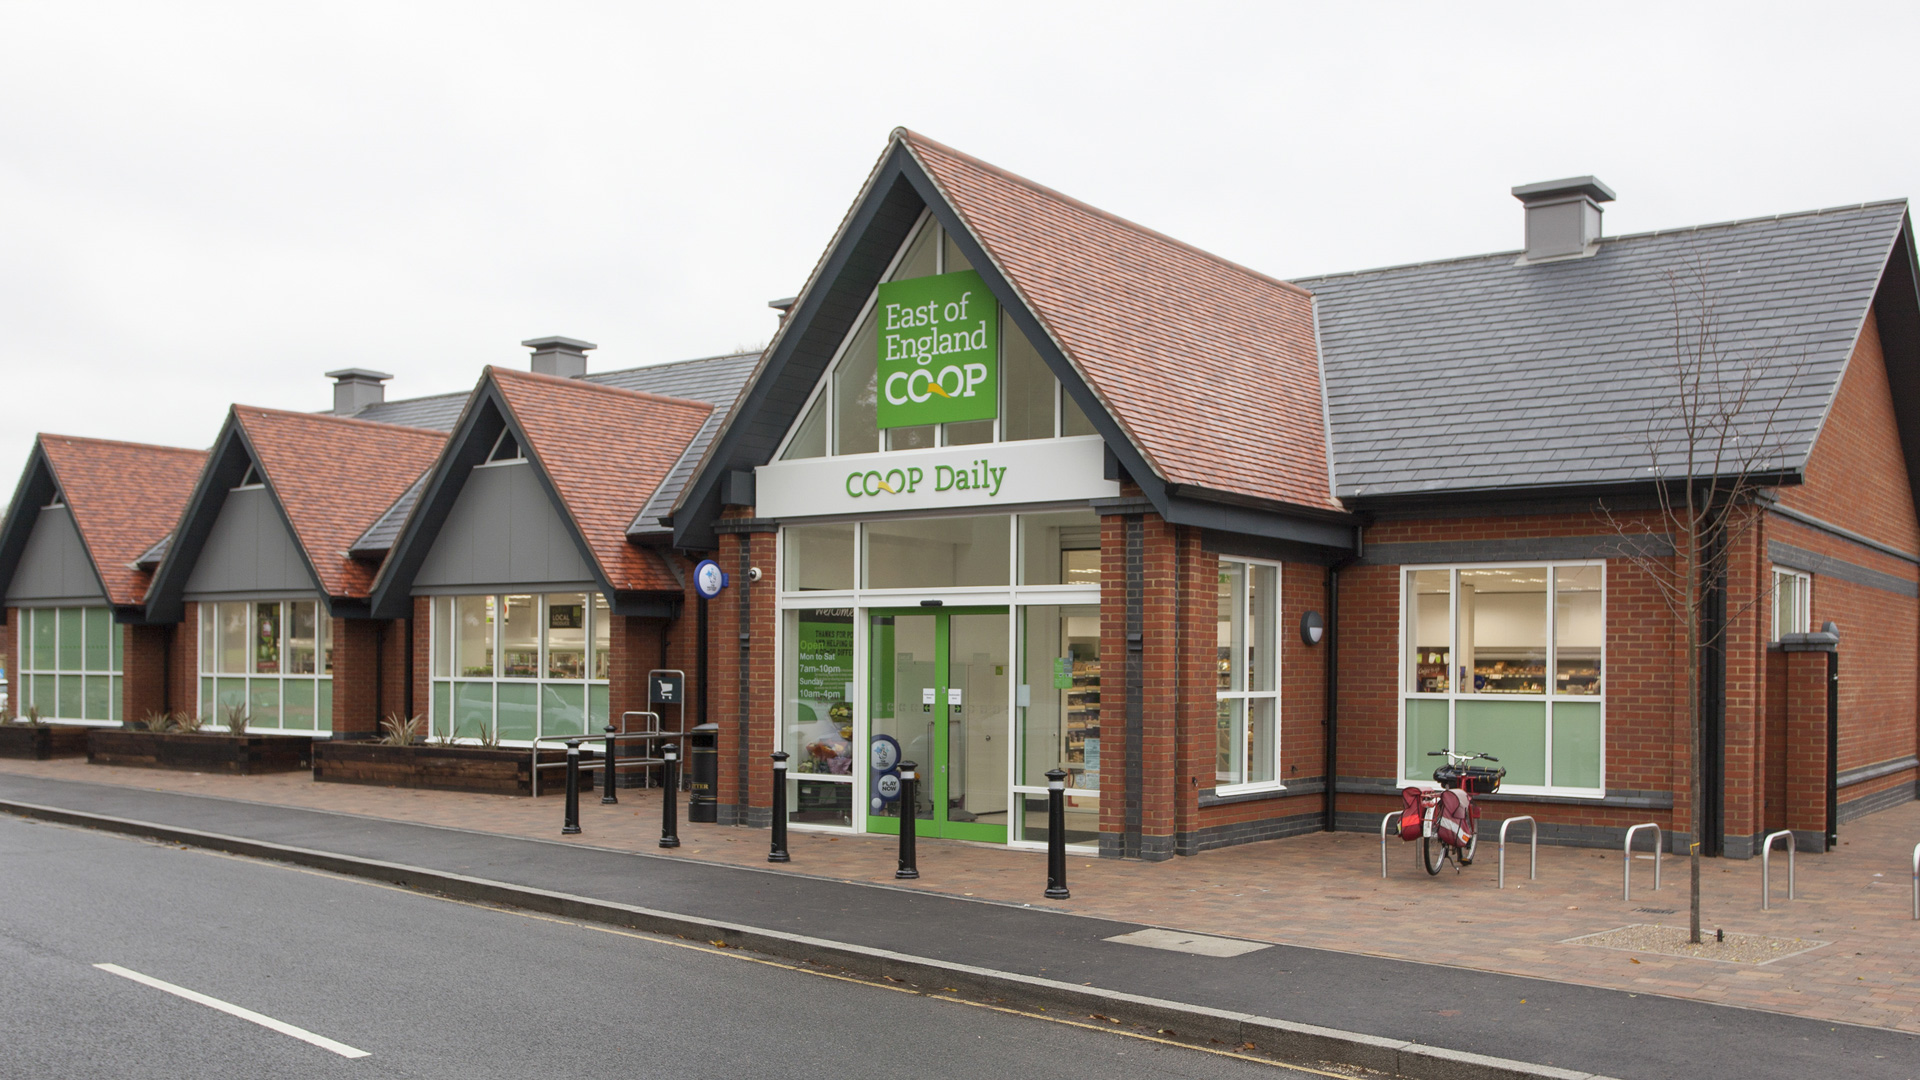 Co-op, Coggeshall